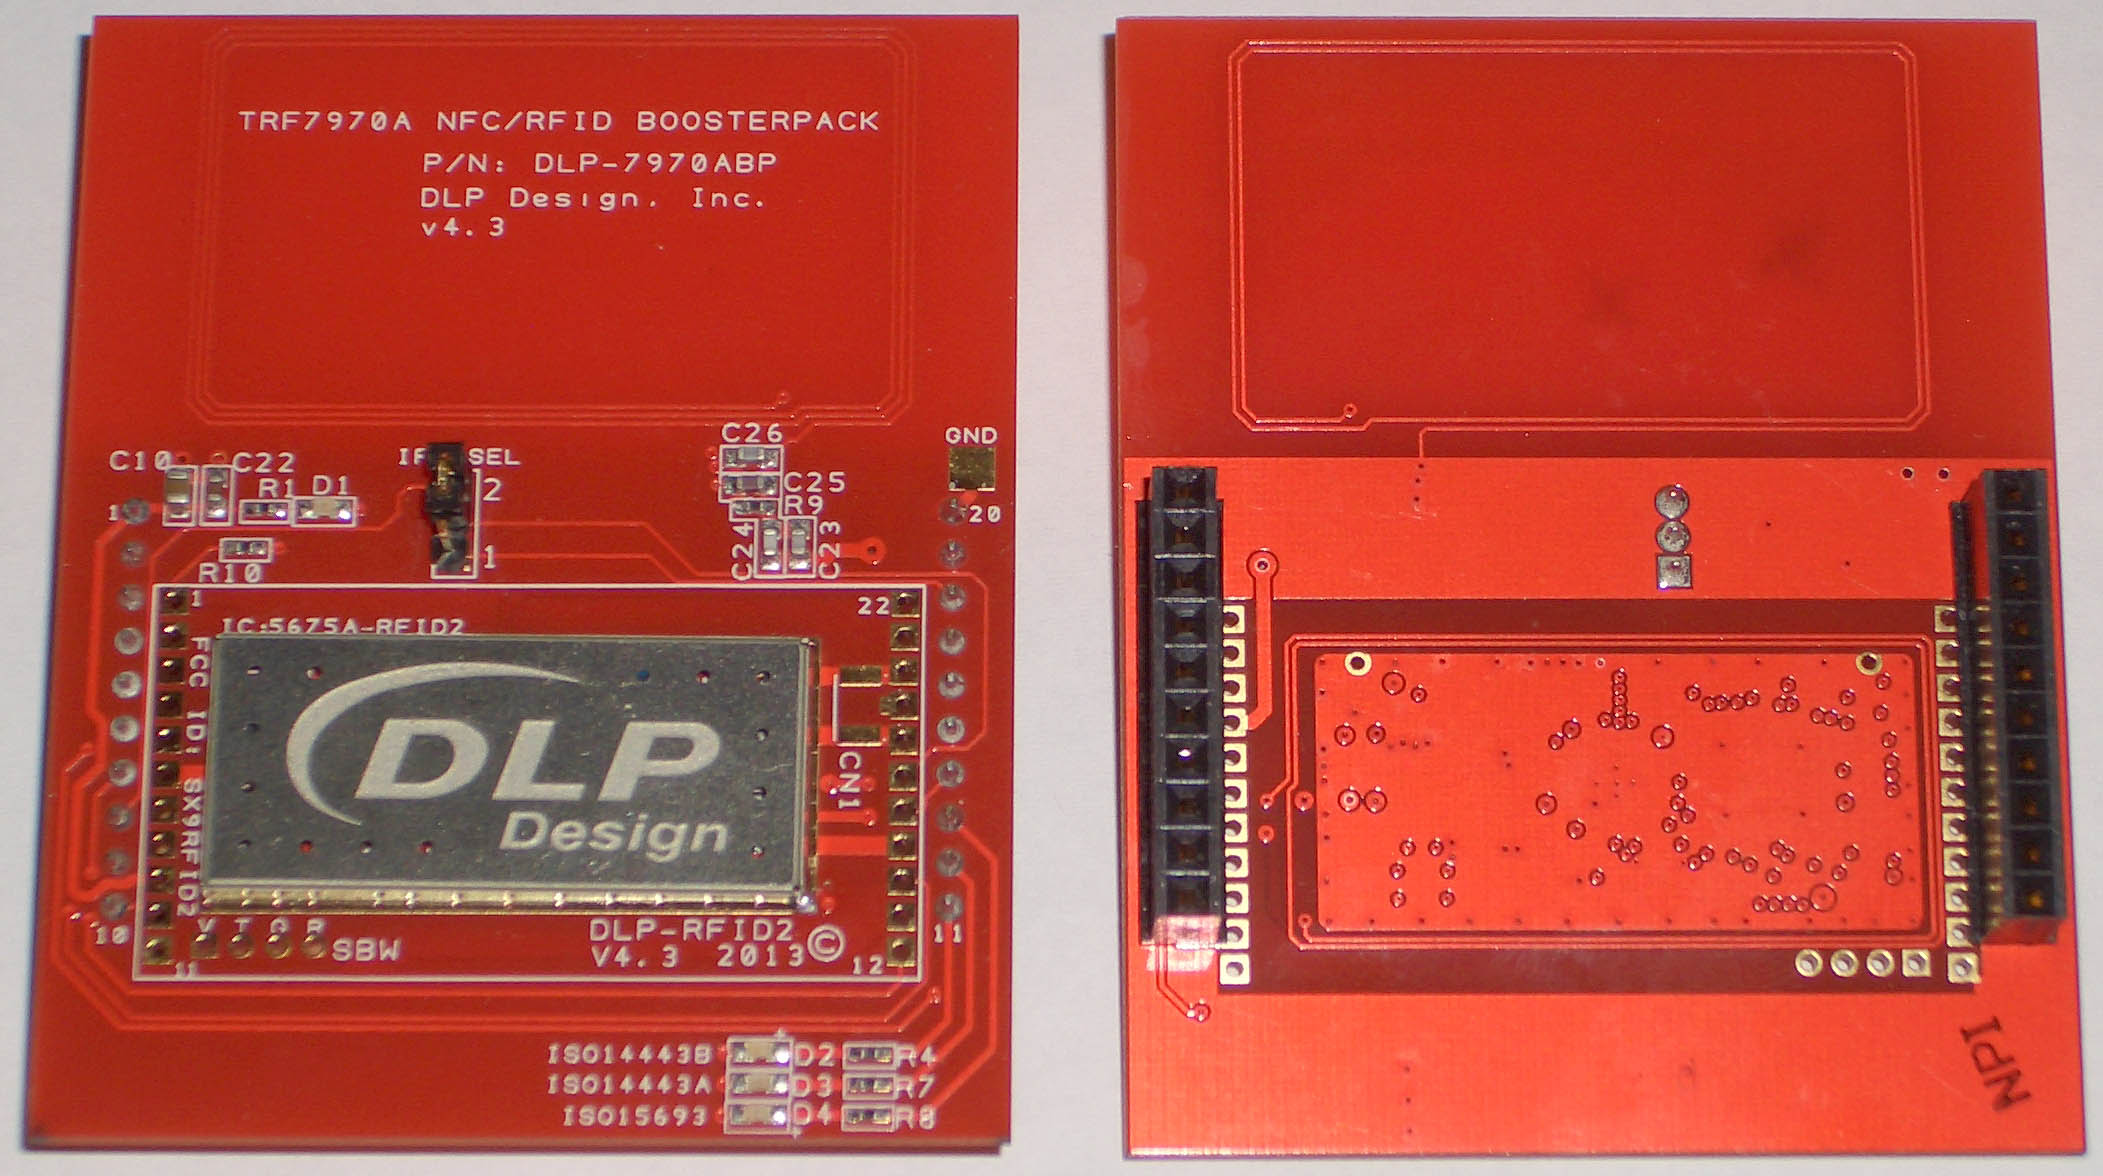 DLP-7970ABP RFID BoosterPack